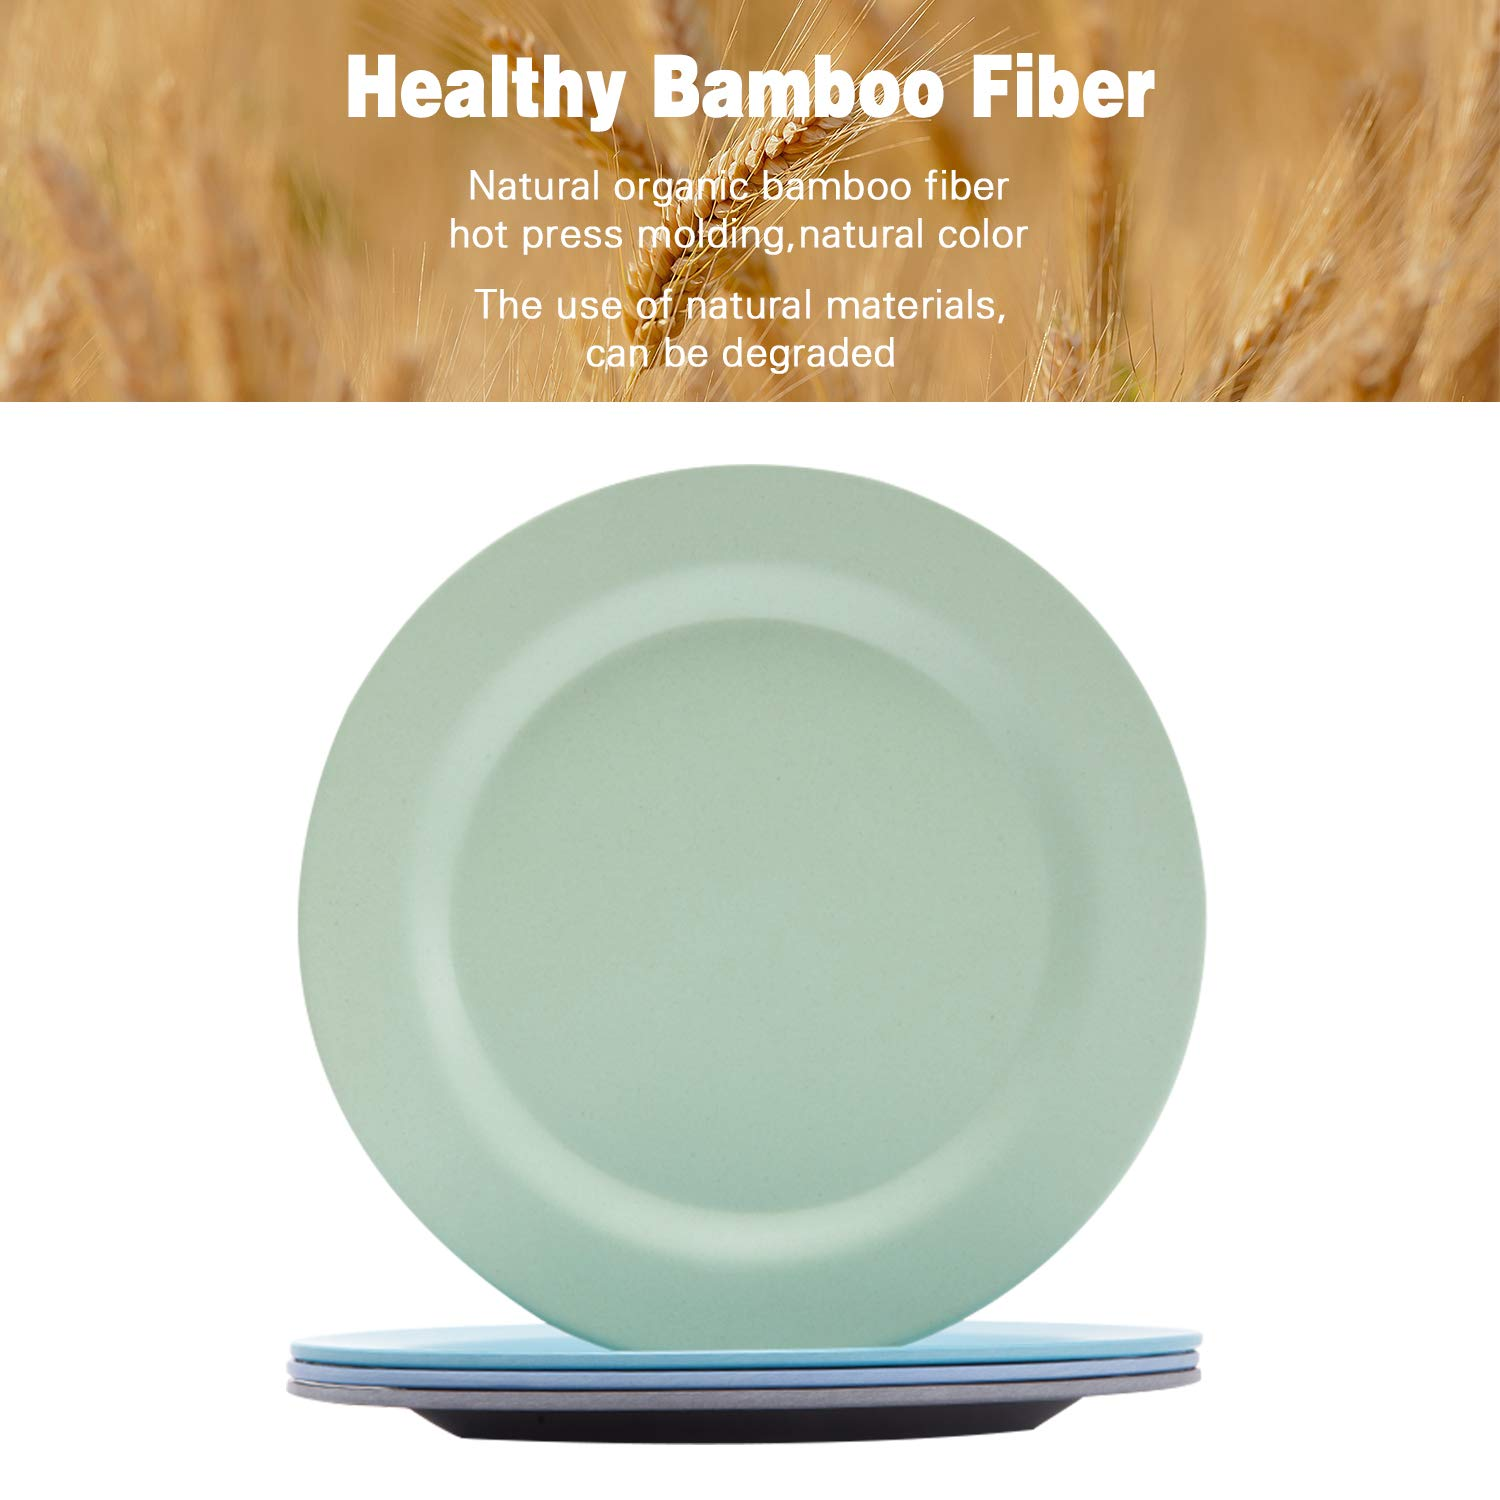 Bamboo Toddler Plates (8'' x 8''), 4pcs Bamboo Kids Plates for Baby Feeding, Non Toxic & Safe Toddler Plates, Eco-Friendly Tableware for Baby Toddler Kids Bamboo Toddler Dishes & Dinnerware by HM-tech